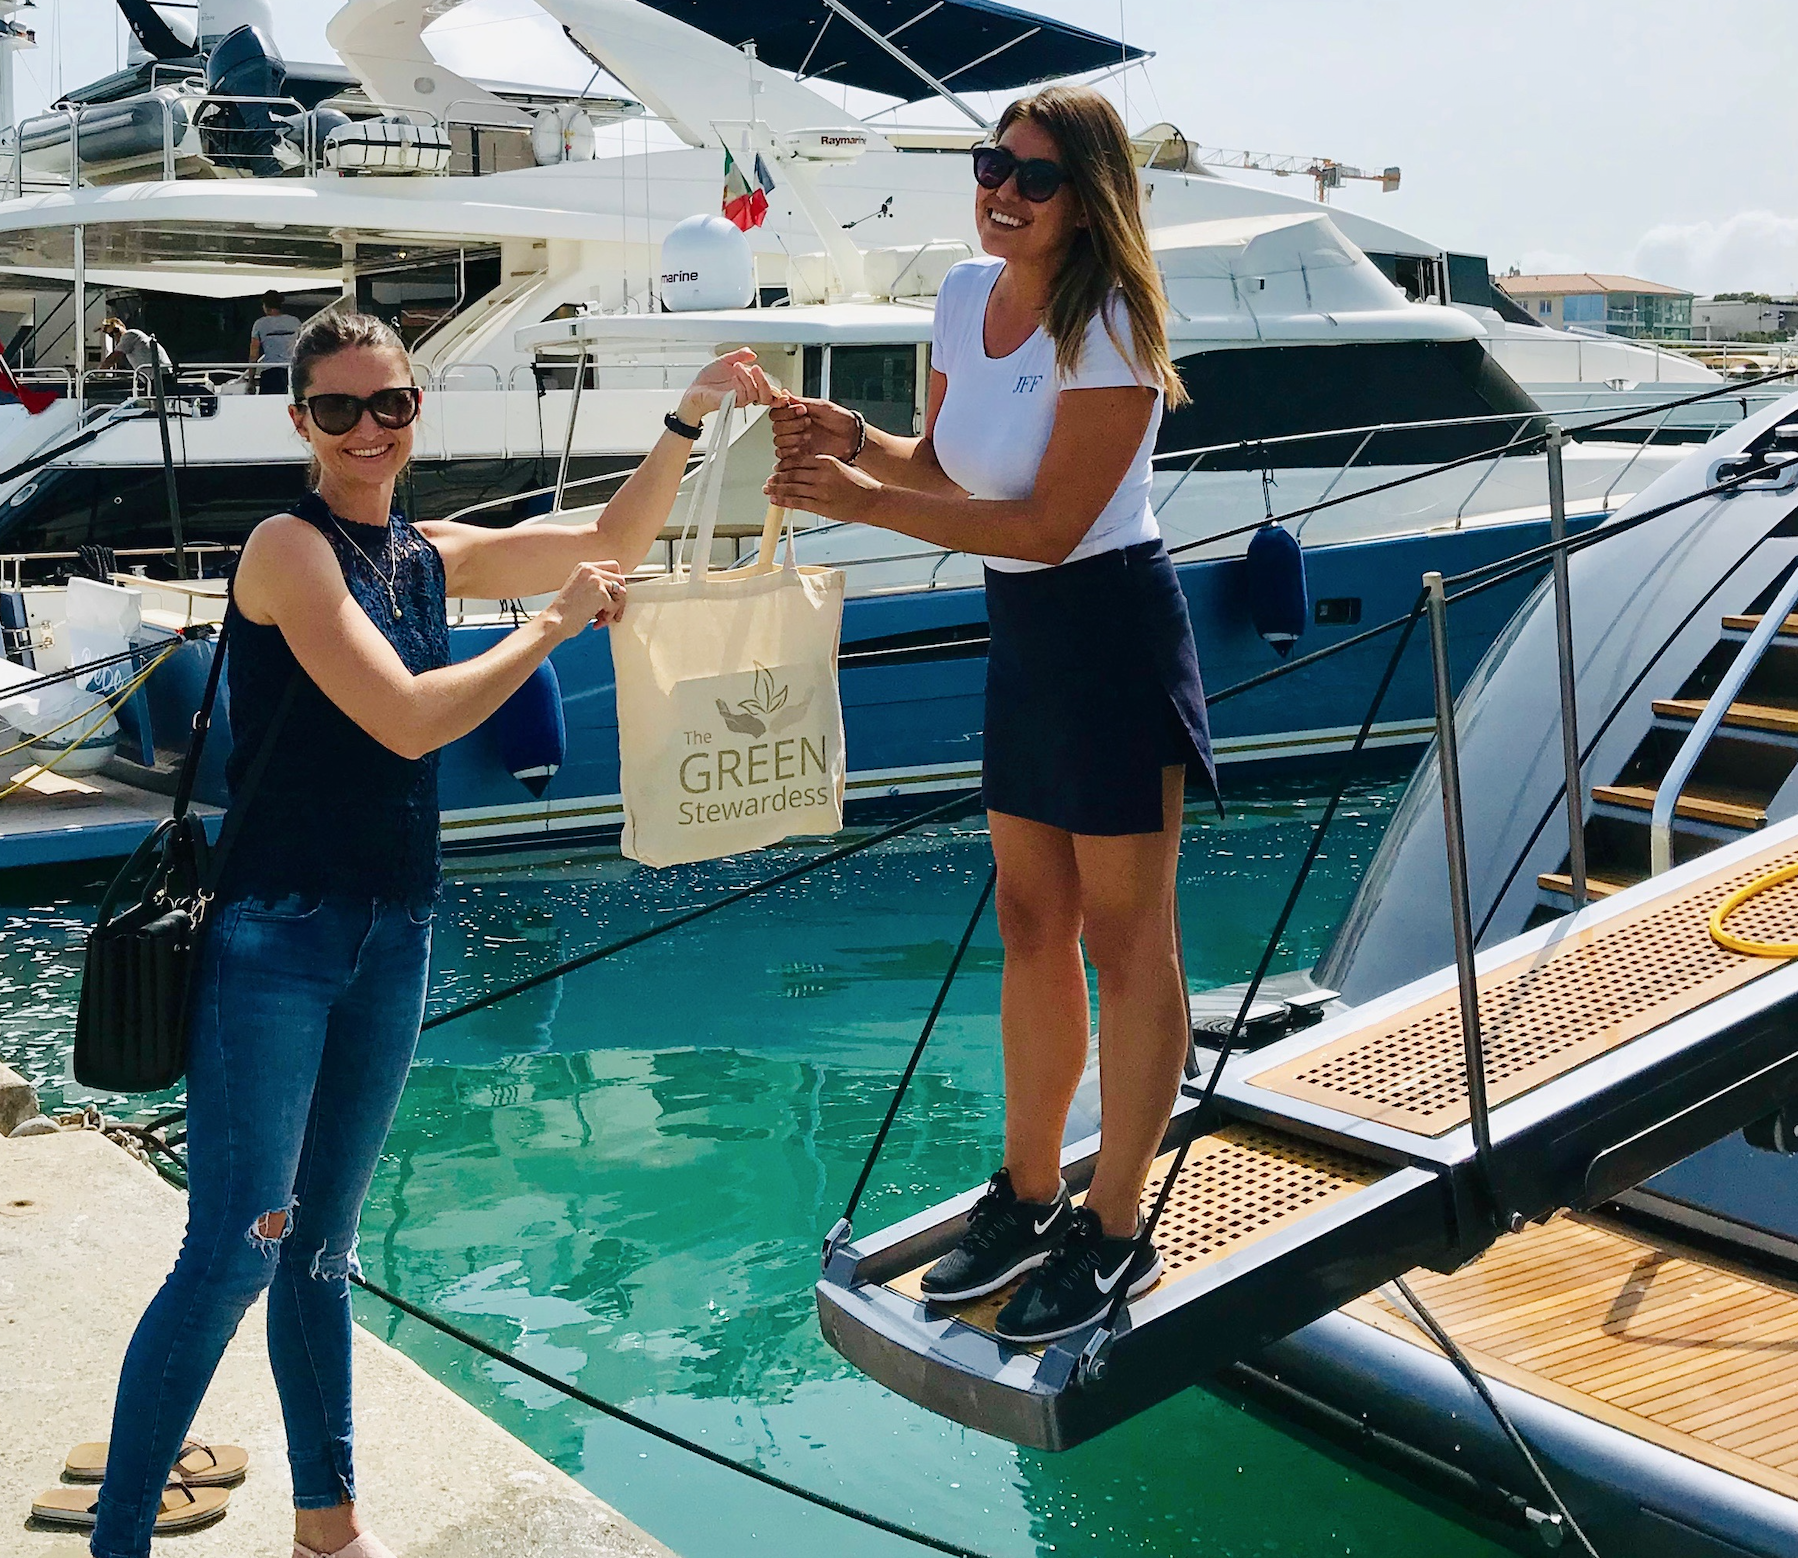 The Green Stewardess and a friend holding up a tote bag while standing at the back of a yacht